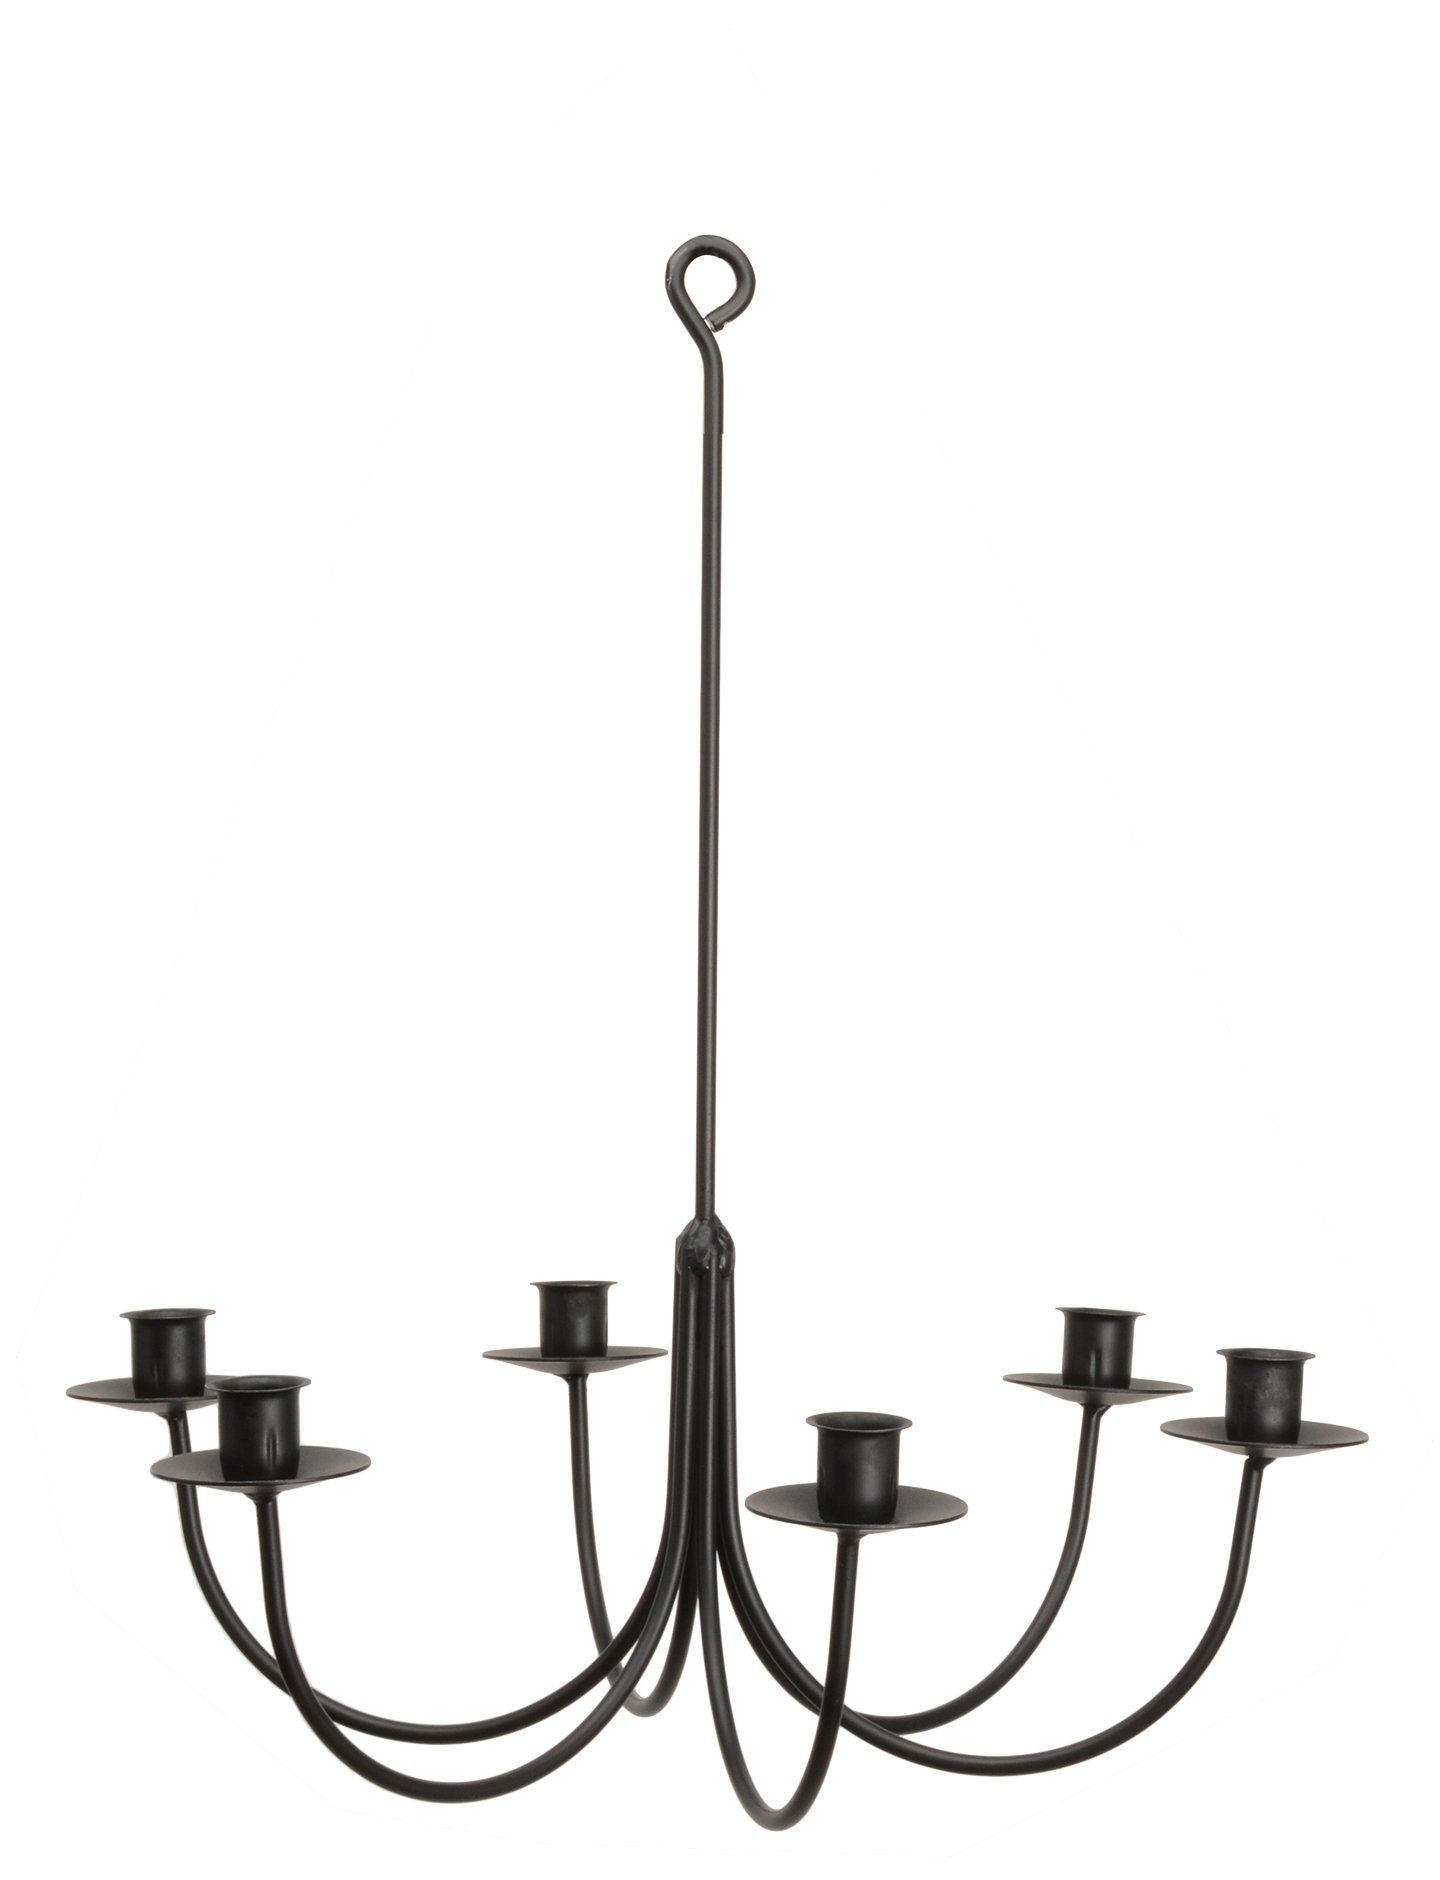 6 Arm Wrought Iron Candle Chandelier Handcrafted Colonial